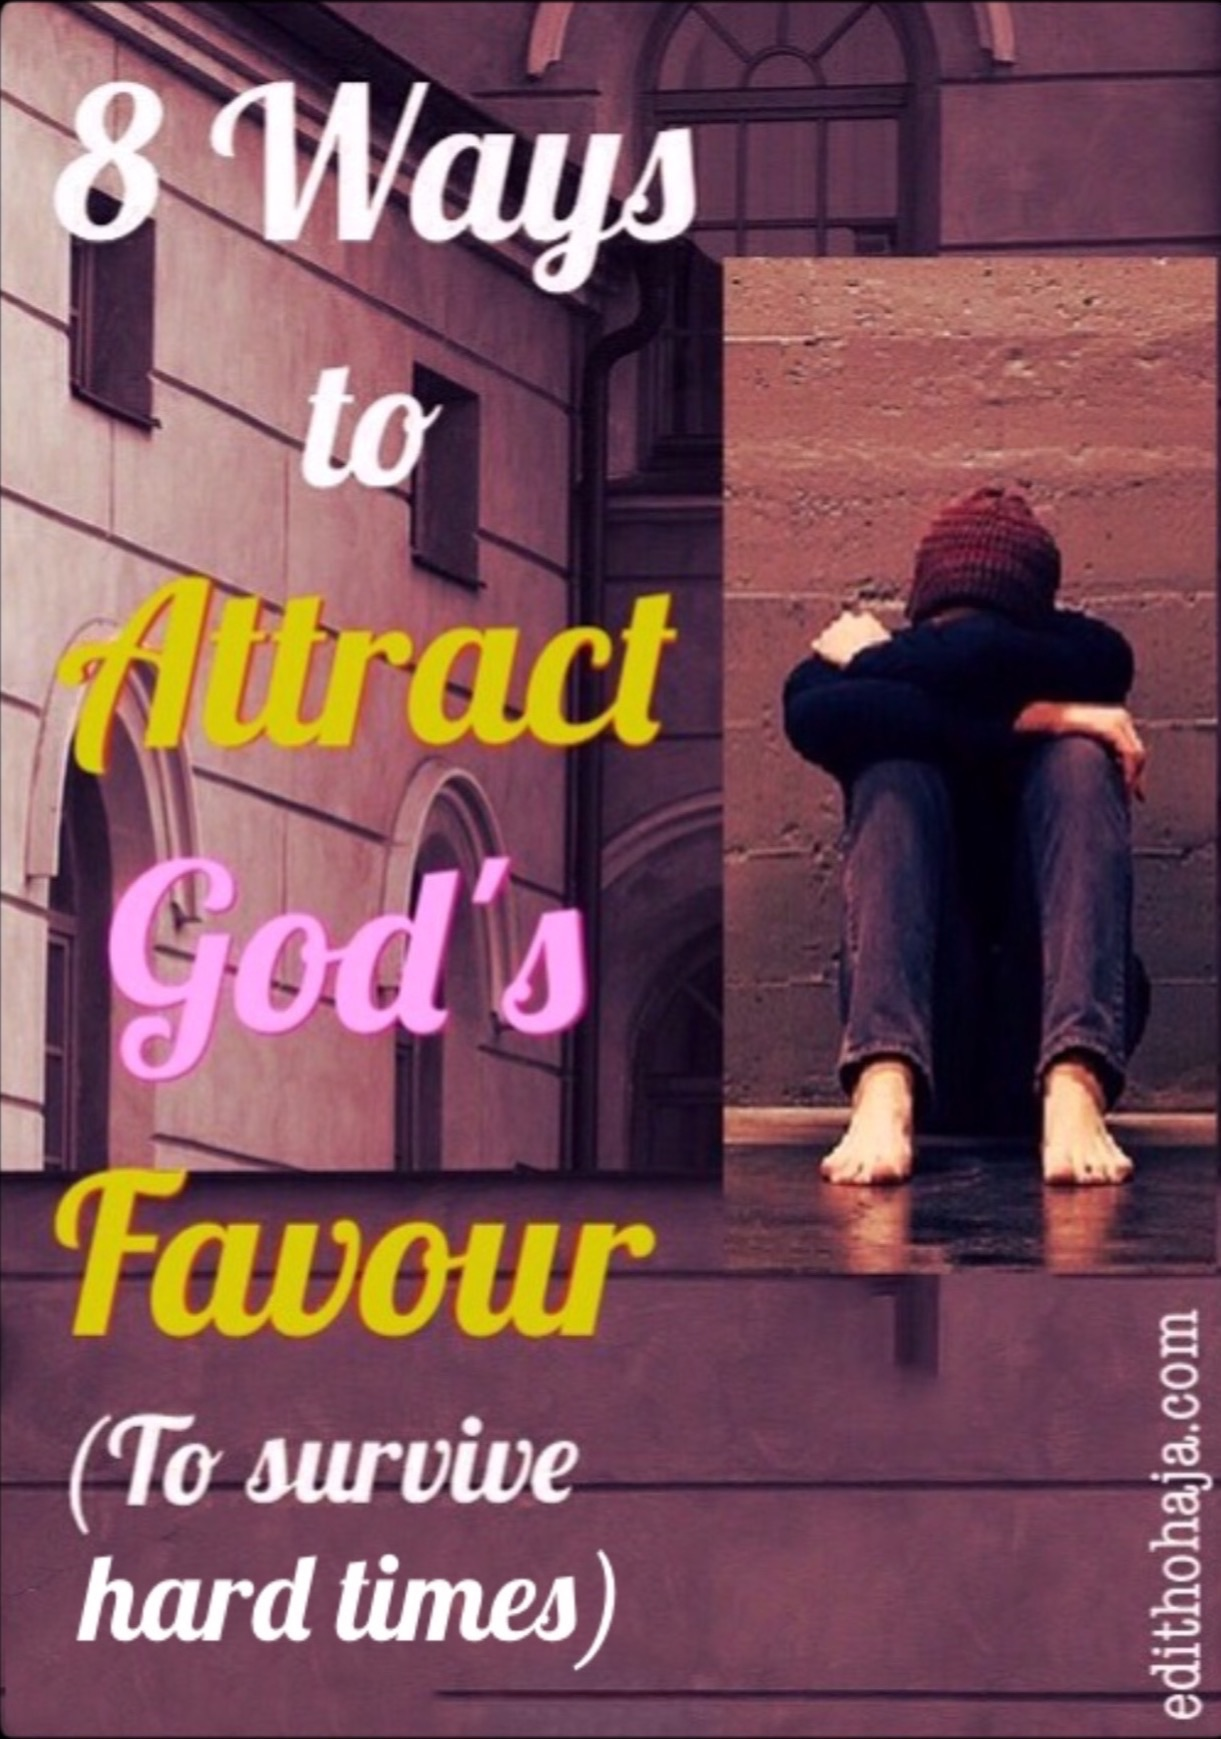 OVERCOMING HARDSHIP #4: 8 WAYS TO ATTRACT GOD'S FAVOUR (To Survive Hard Times)